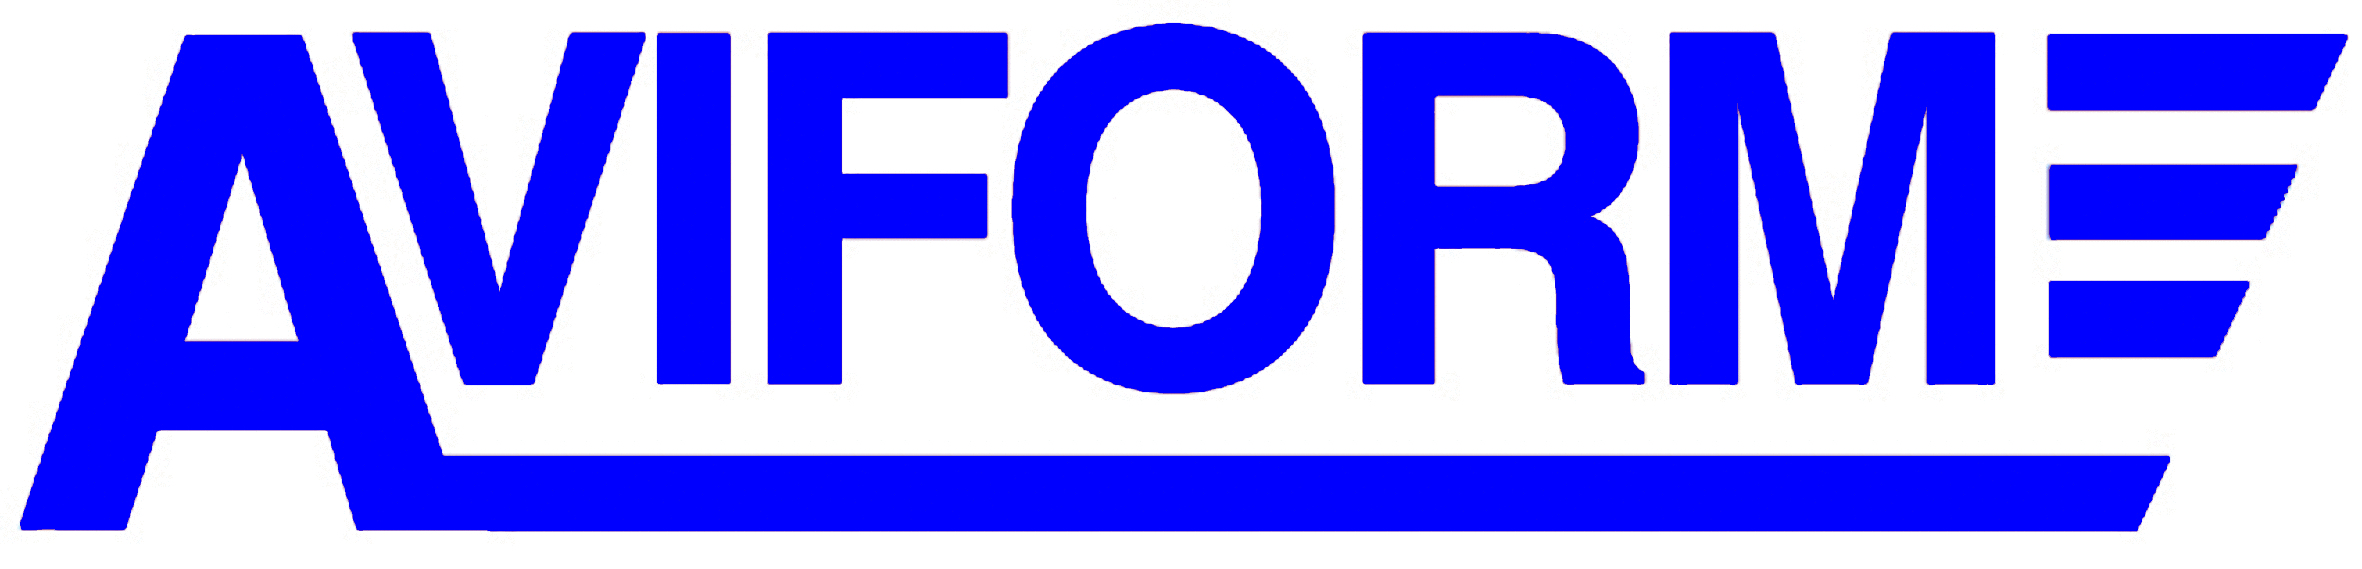 Aviform_Logo_blue_2362_x_569